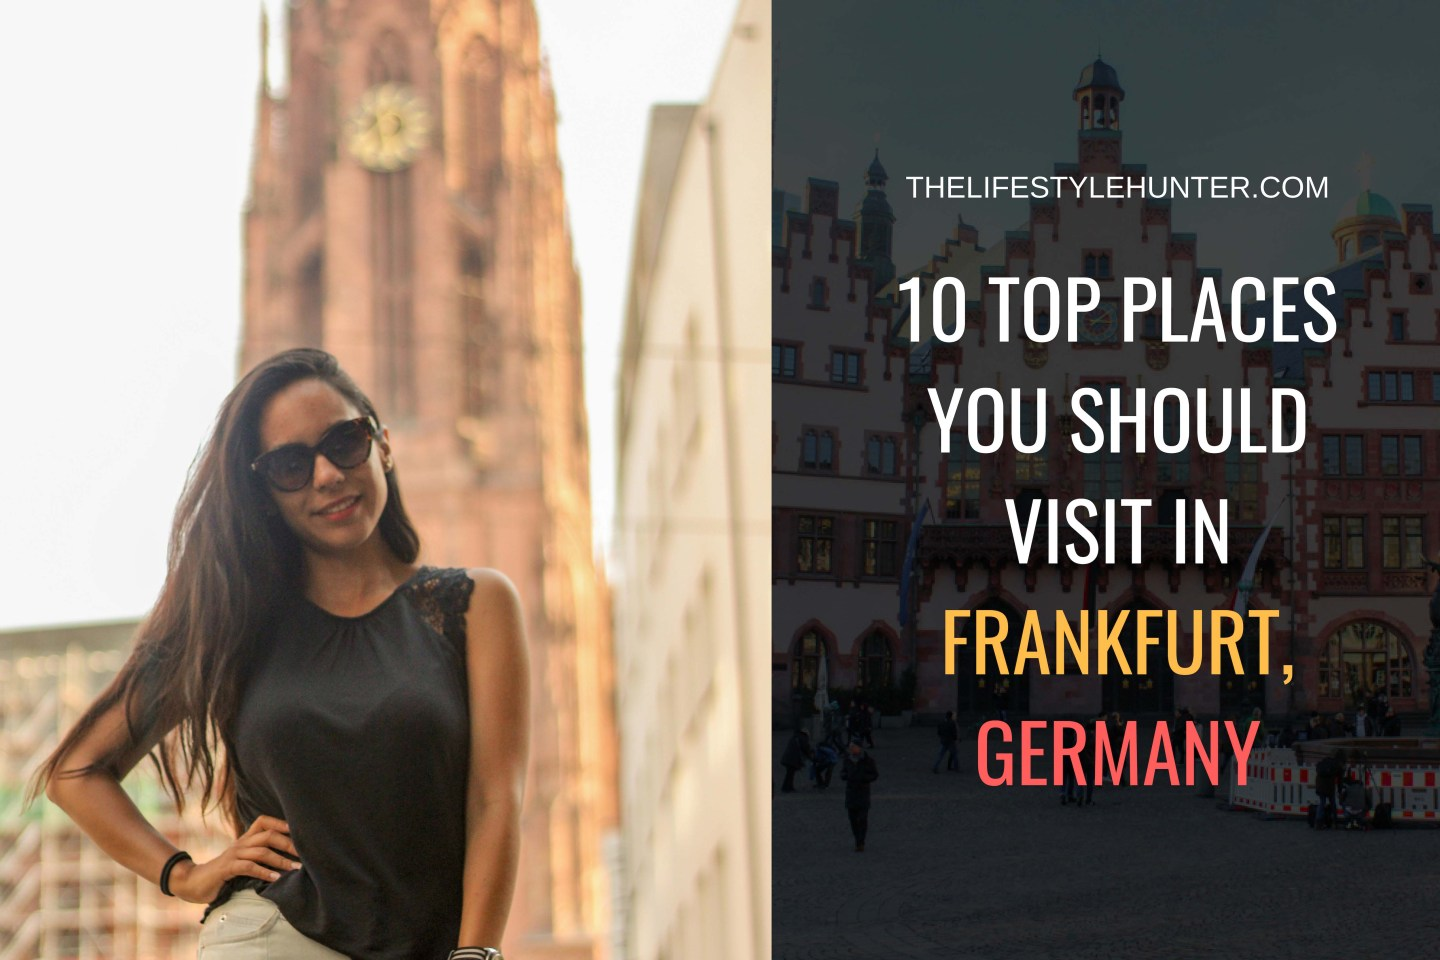 10 top places you should visit in Frankfurt, Germany